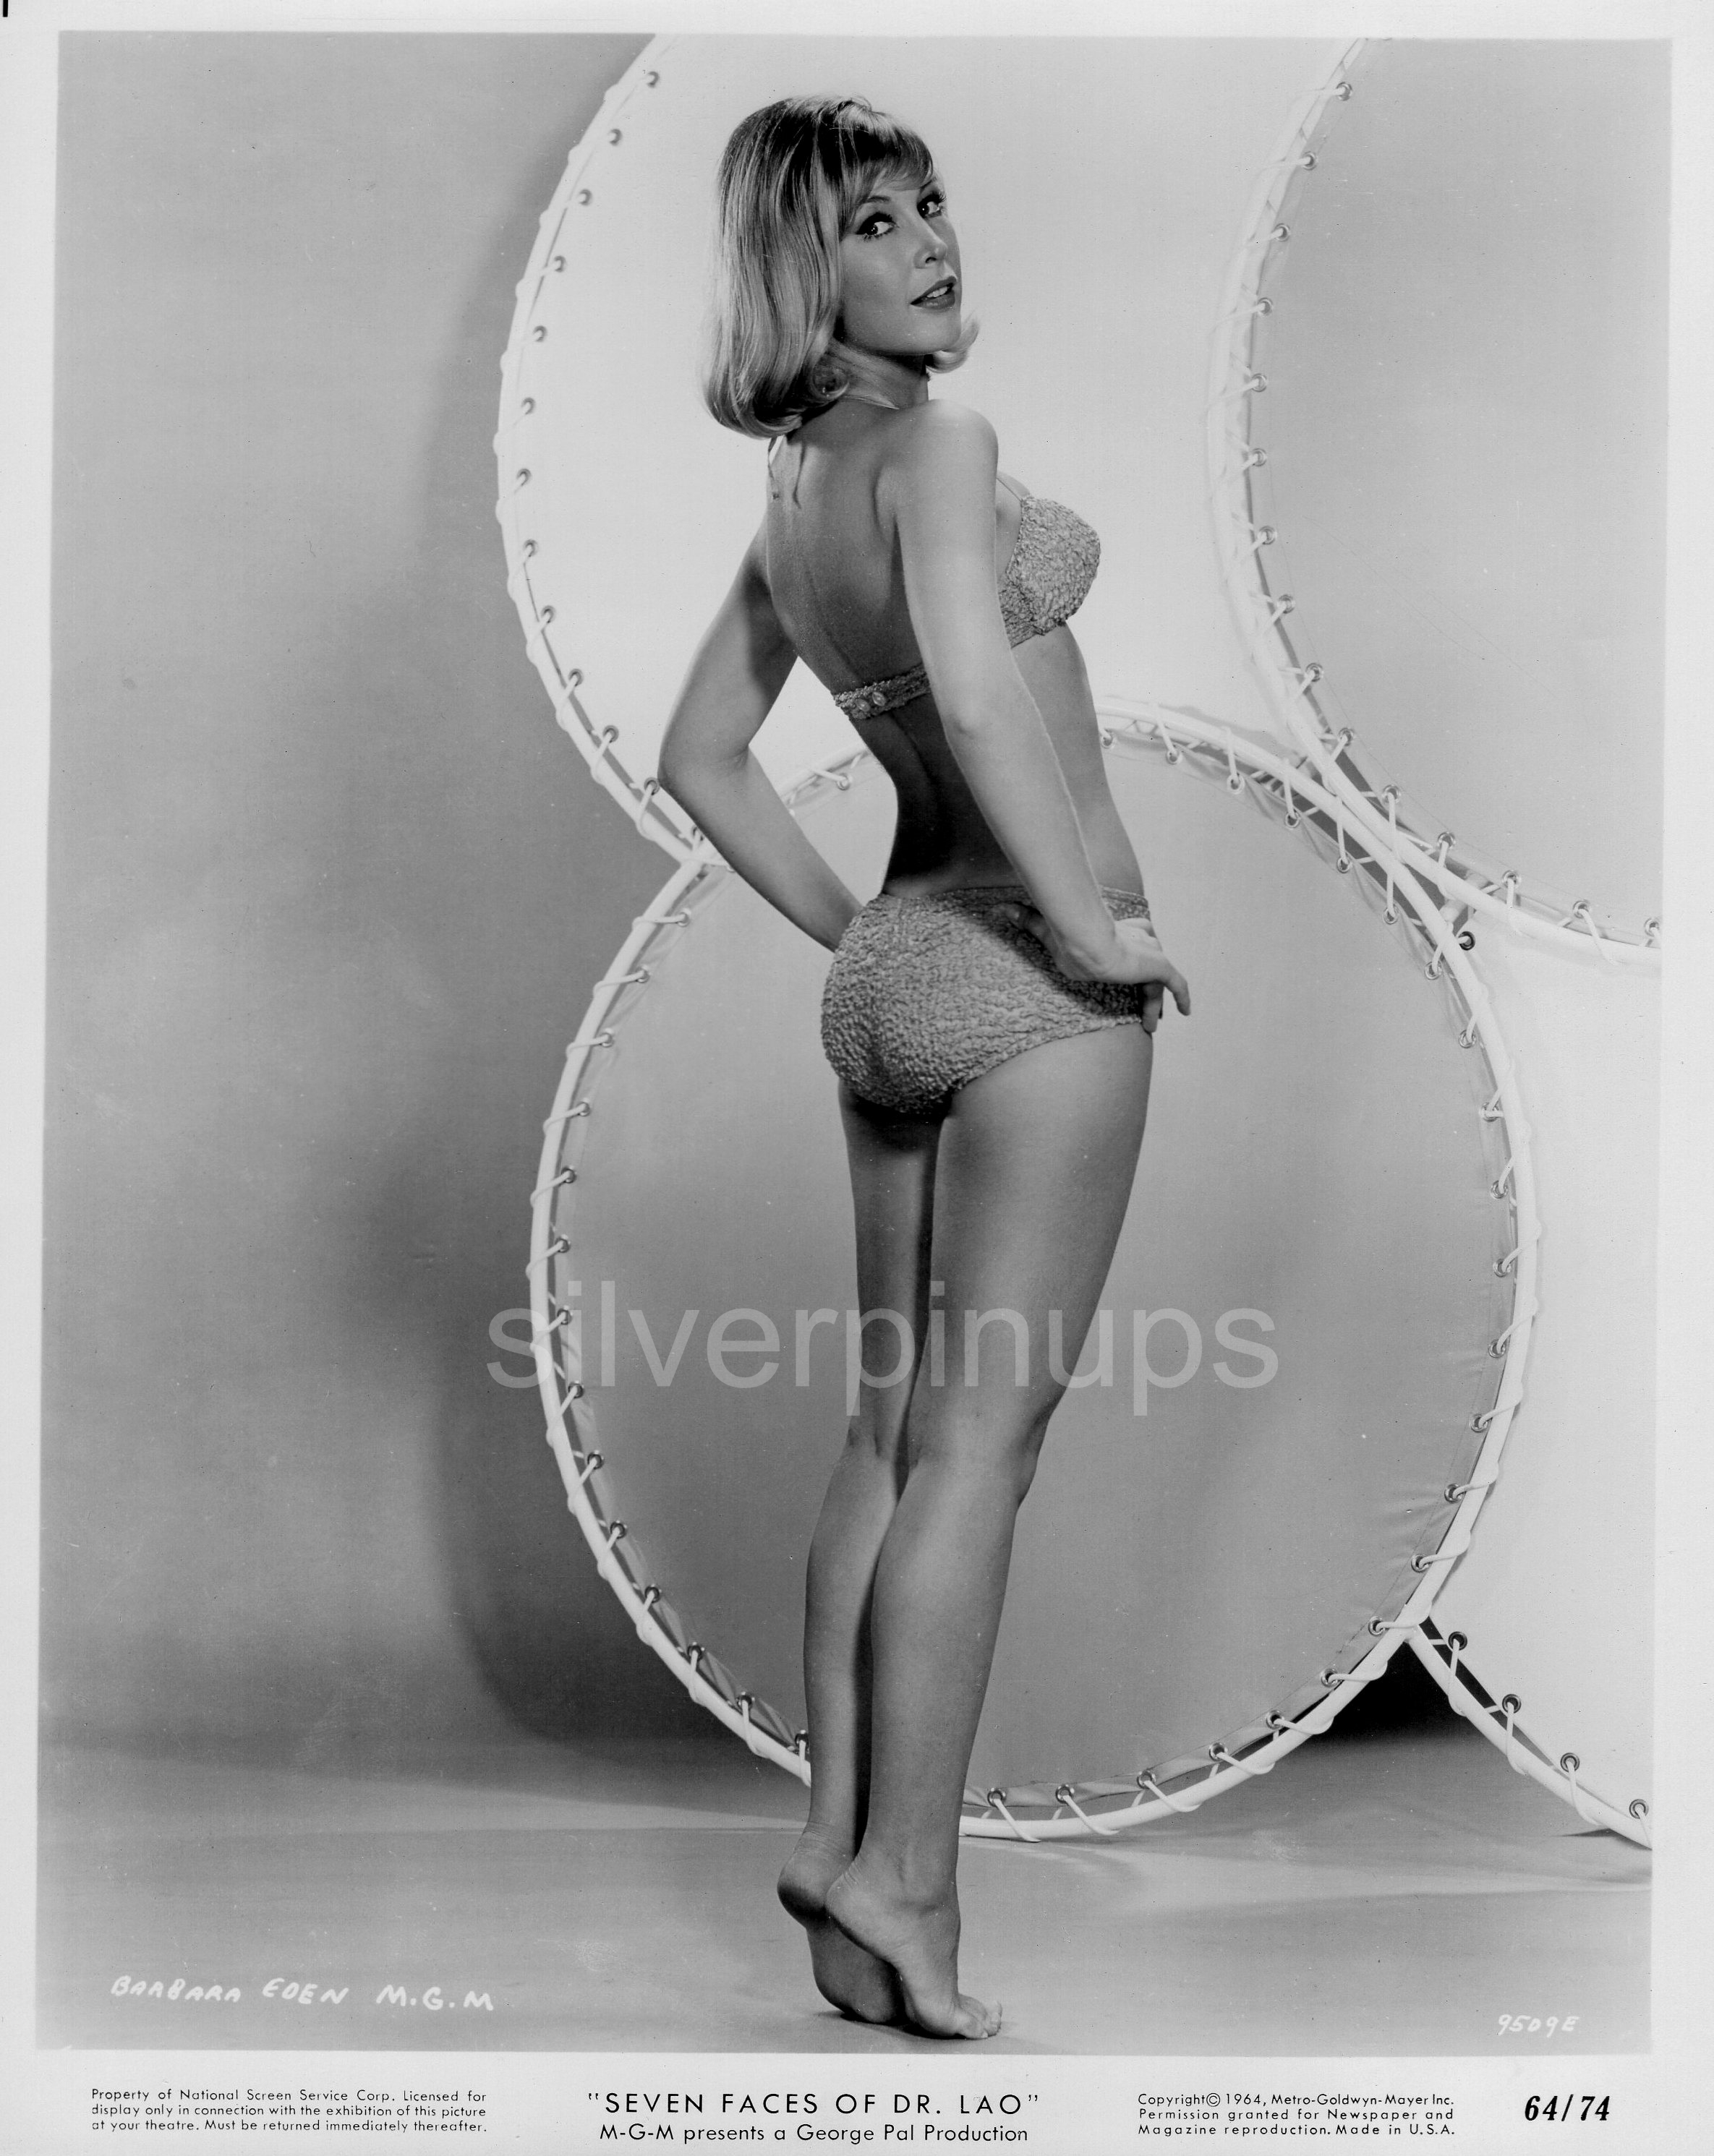 Barbara eden bikini photos